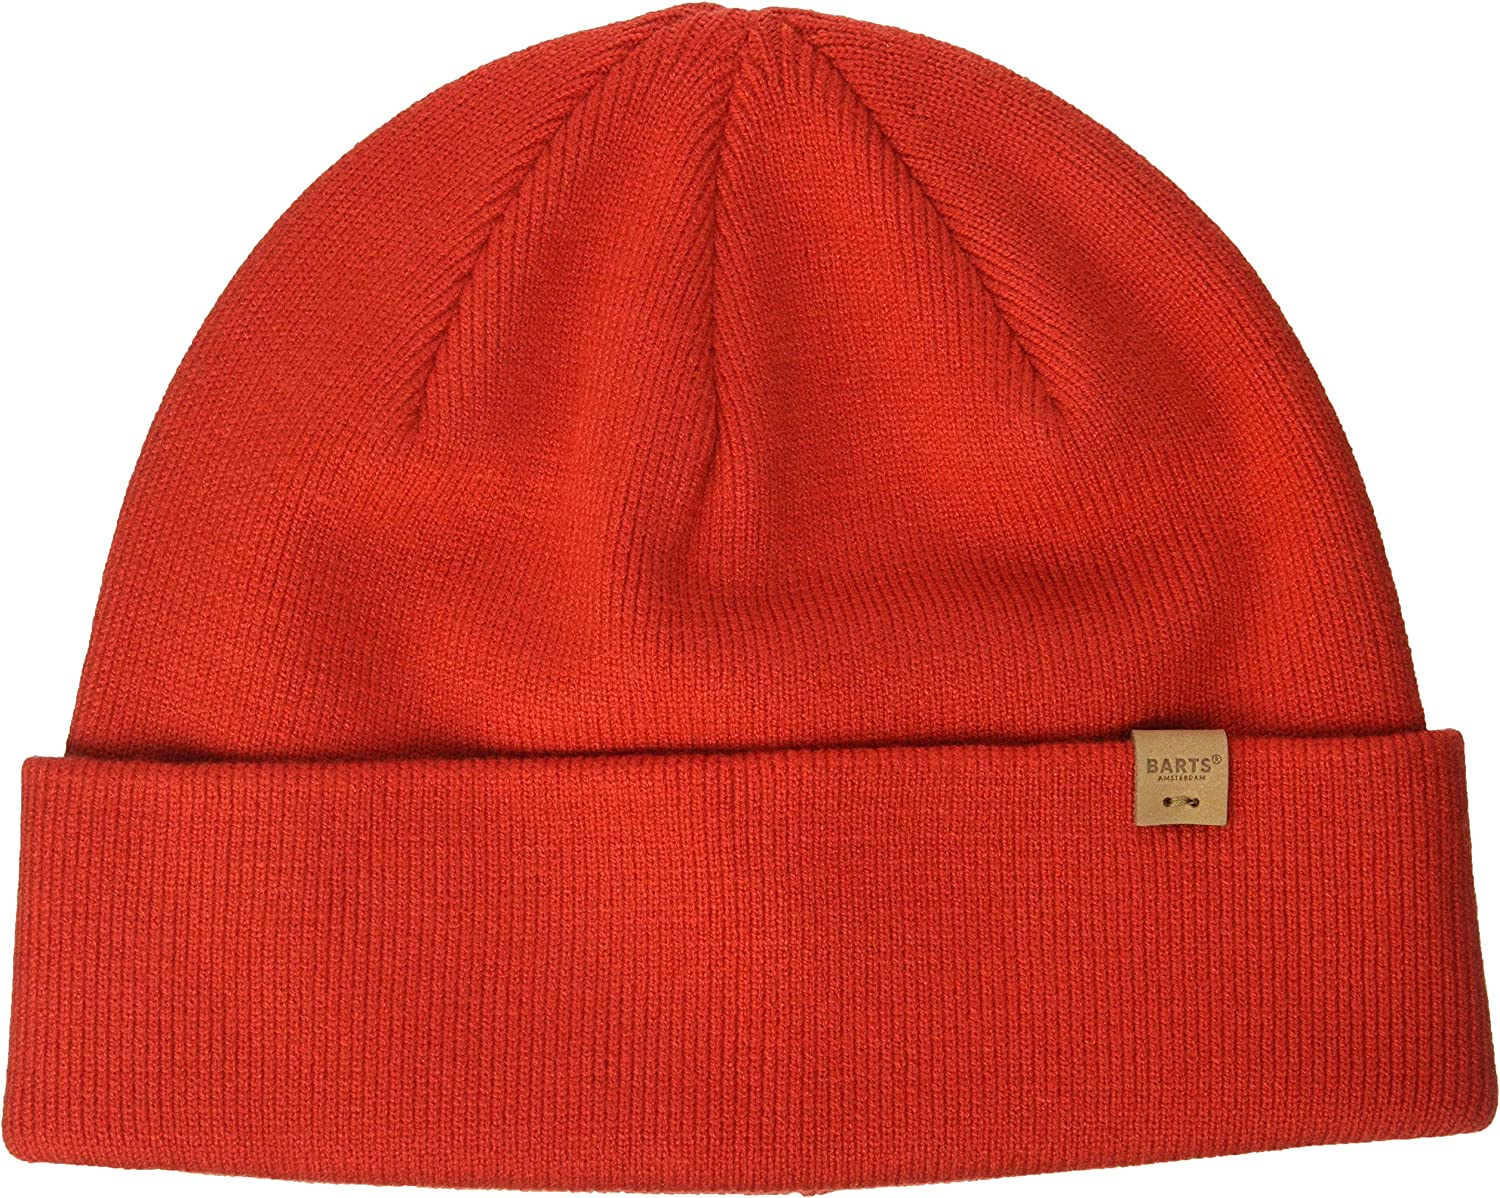 Barts Willes Beanie Berretto Unisex-Adulto